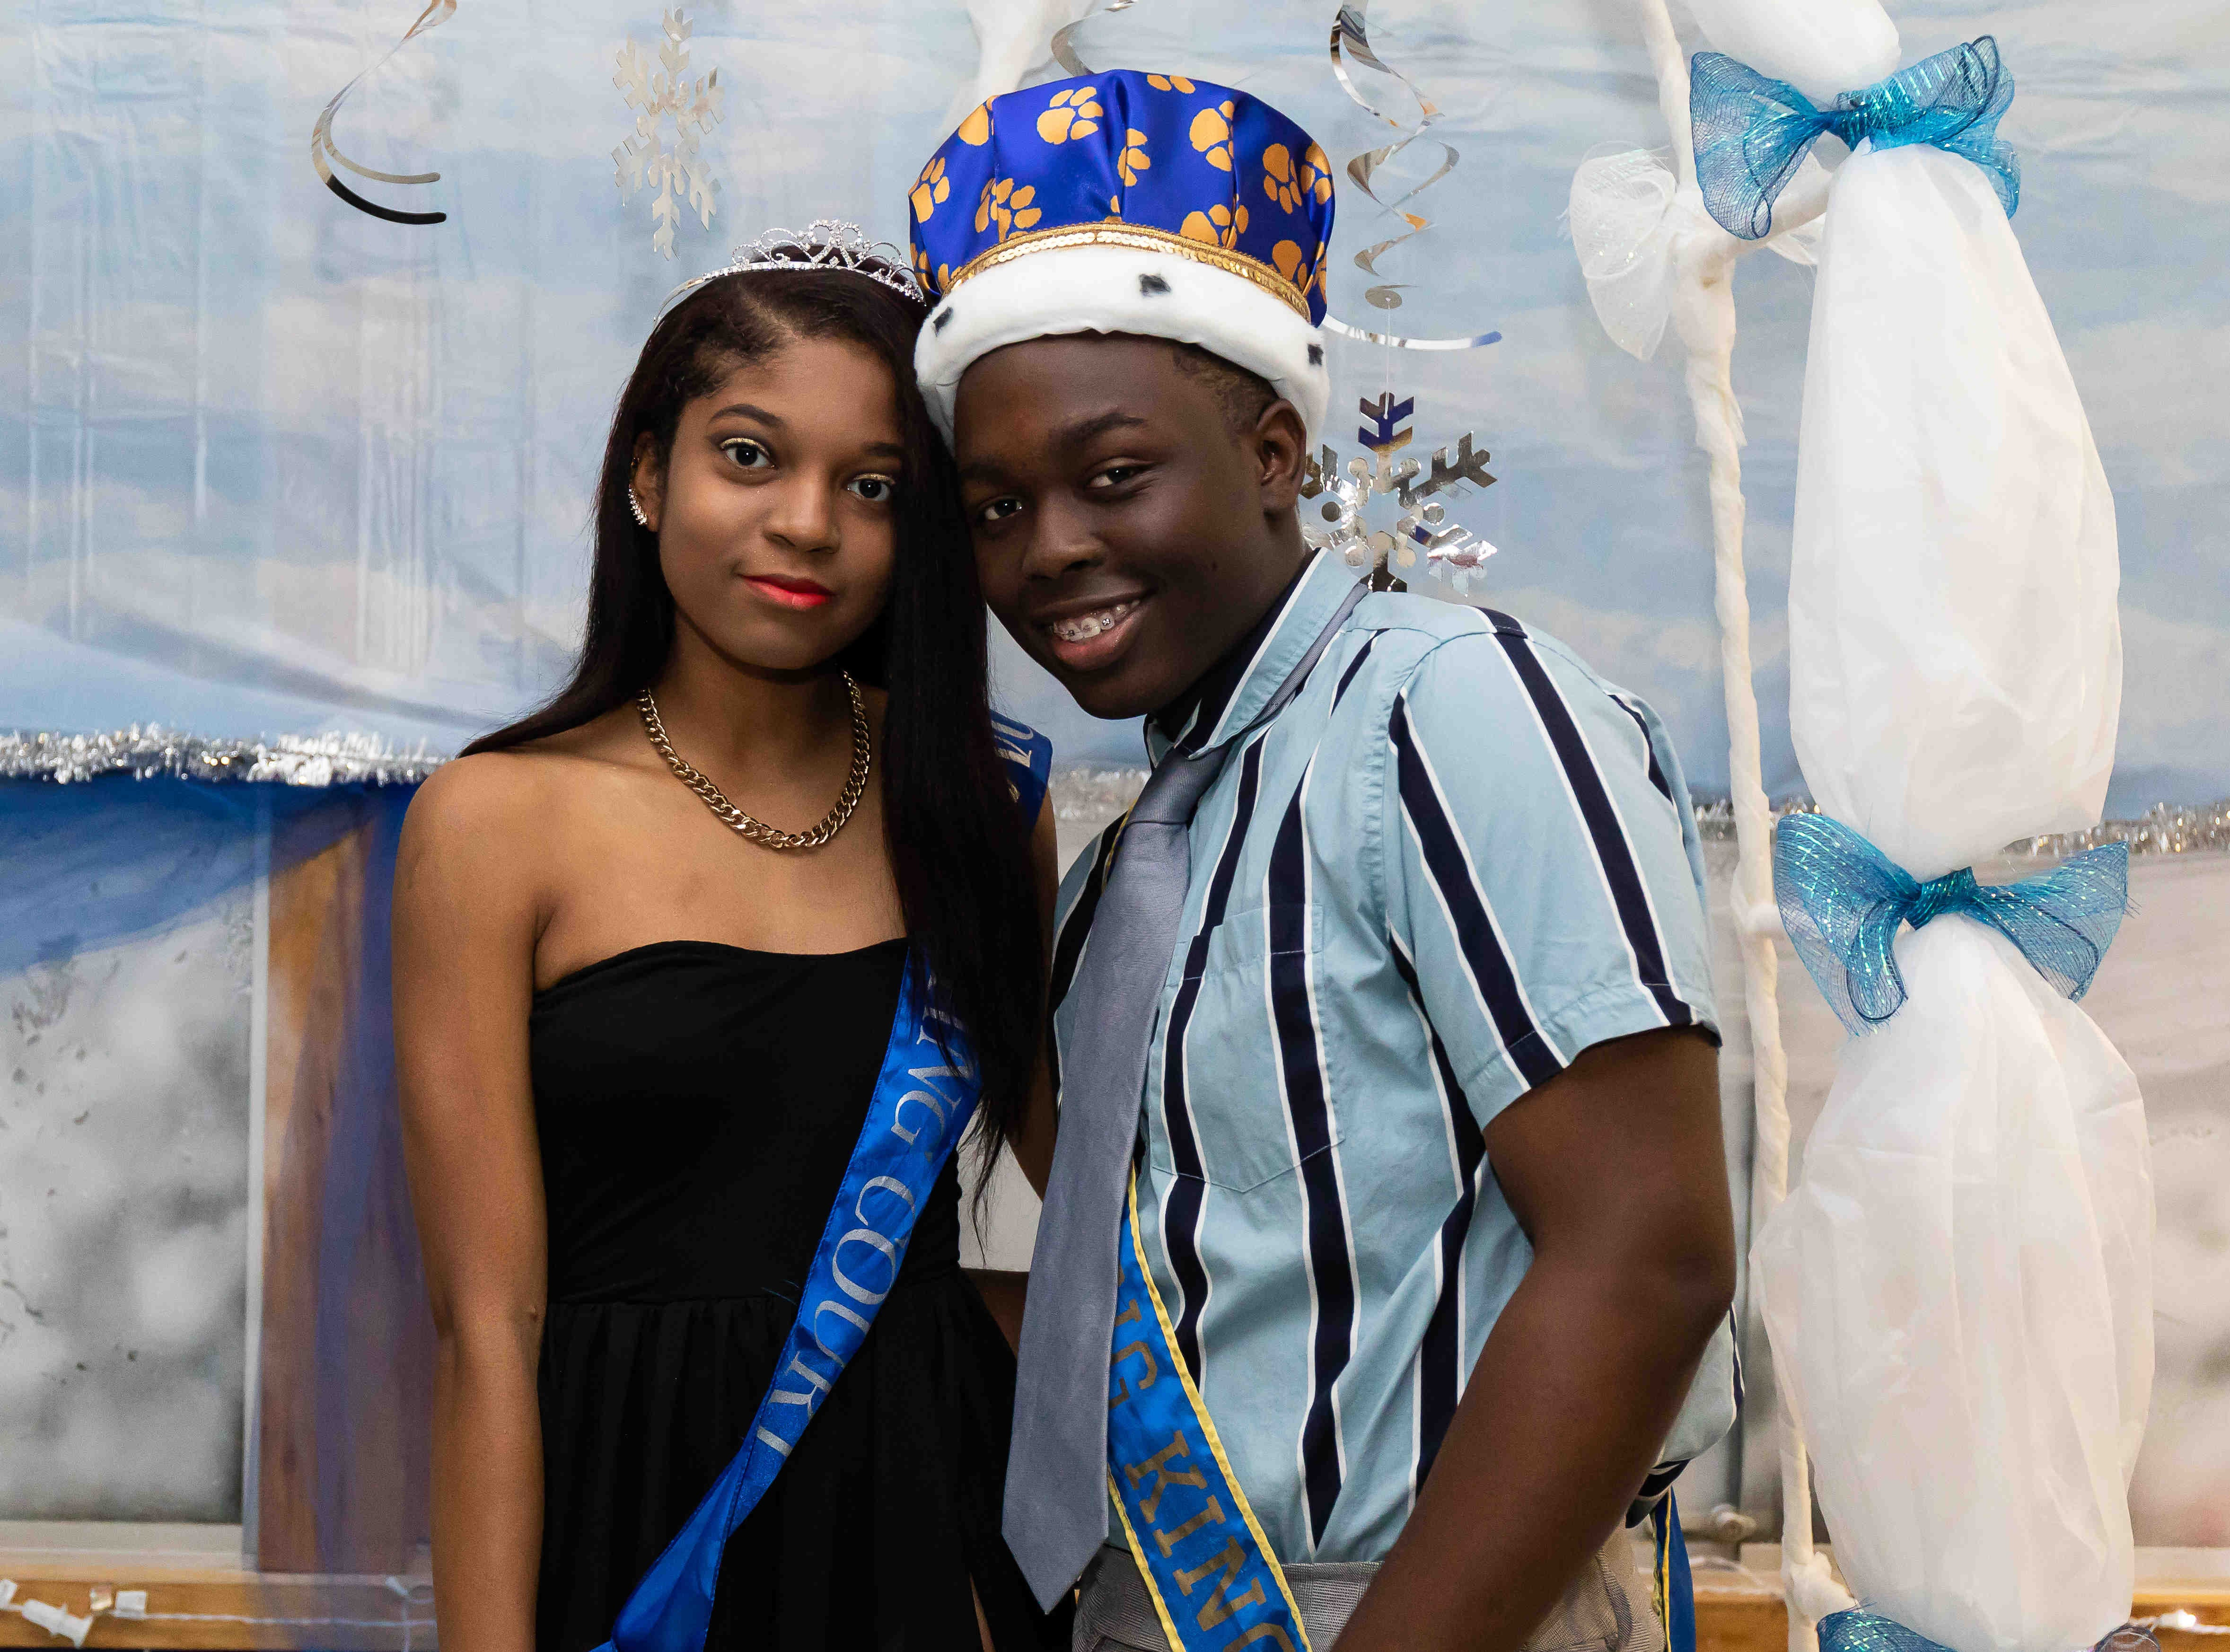 Students attend Alexis I. duPont High School homecoming dance Saturday, Oct. 27, 2018 at the school.